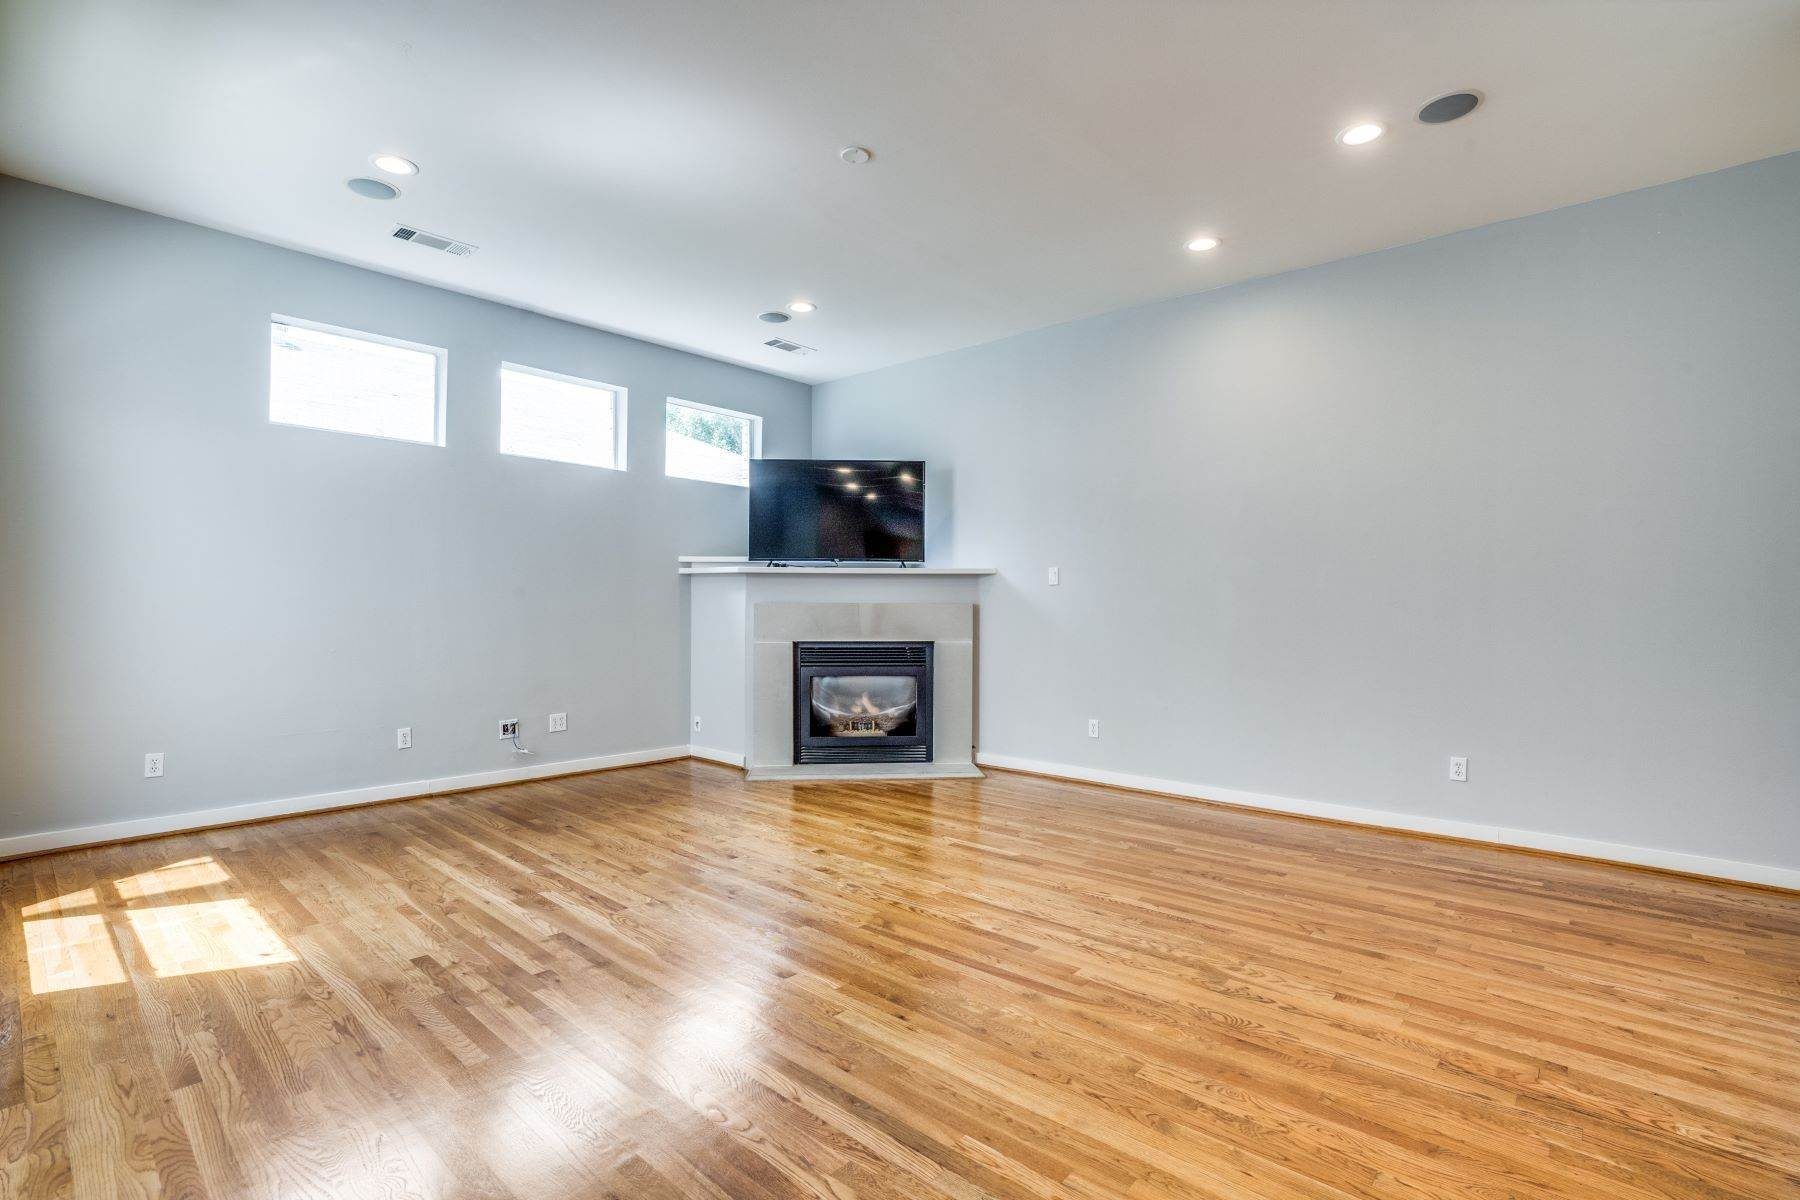 6. townhouses for Sale at Clean, Contemporary, Open Concept 3-Bedroom Townhouse 3925 Gilbert Avenue, #C Dallas, Texas 75219 United States